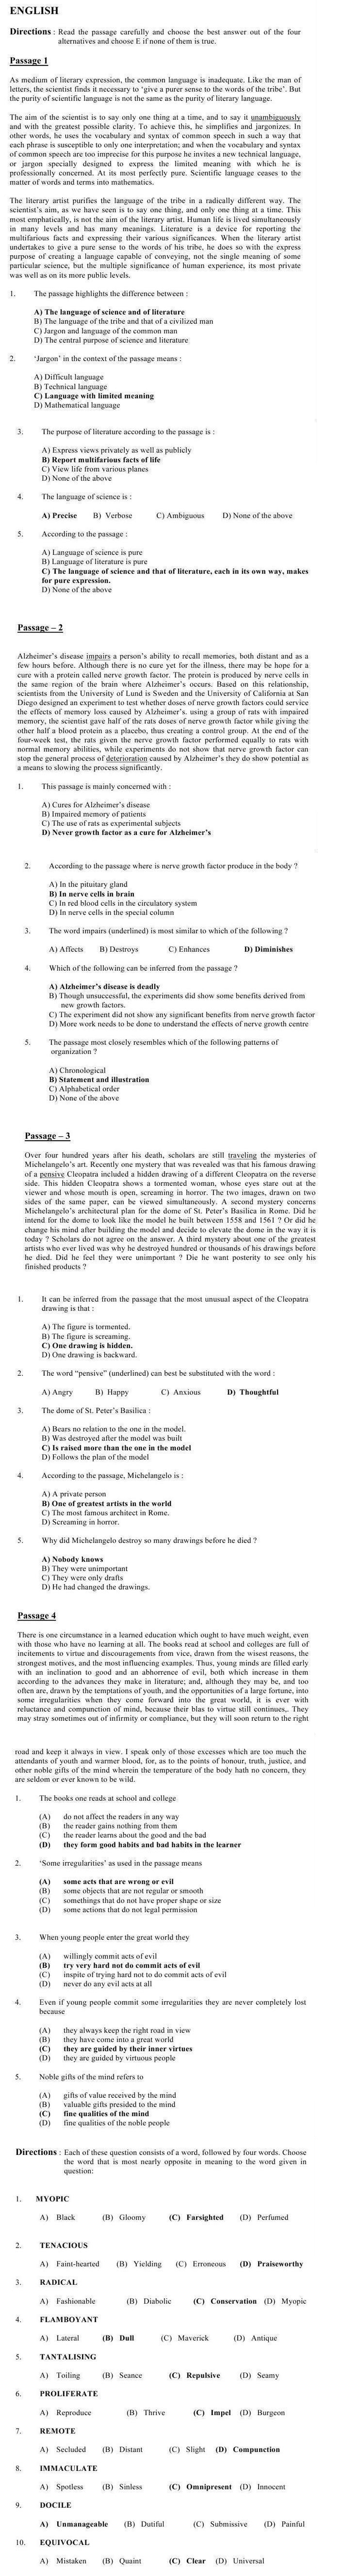 JEMAT Sample Question Paper 2014